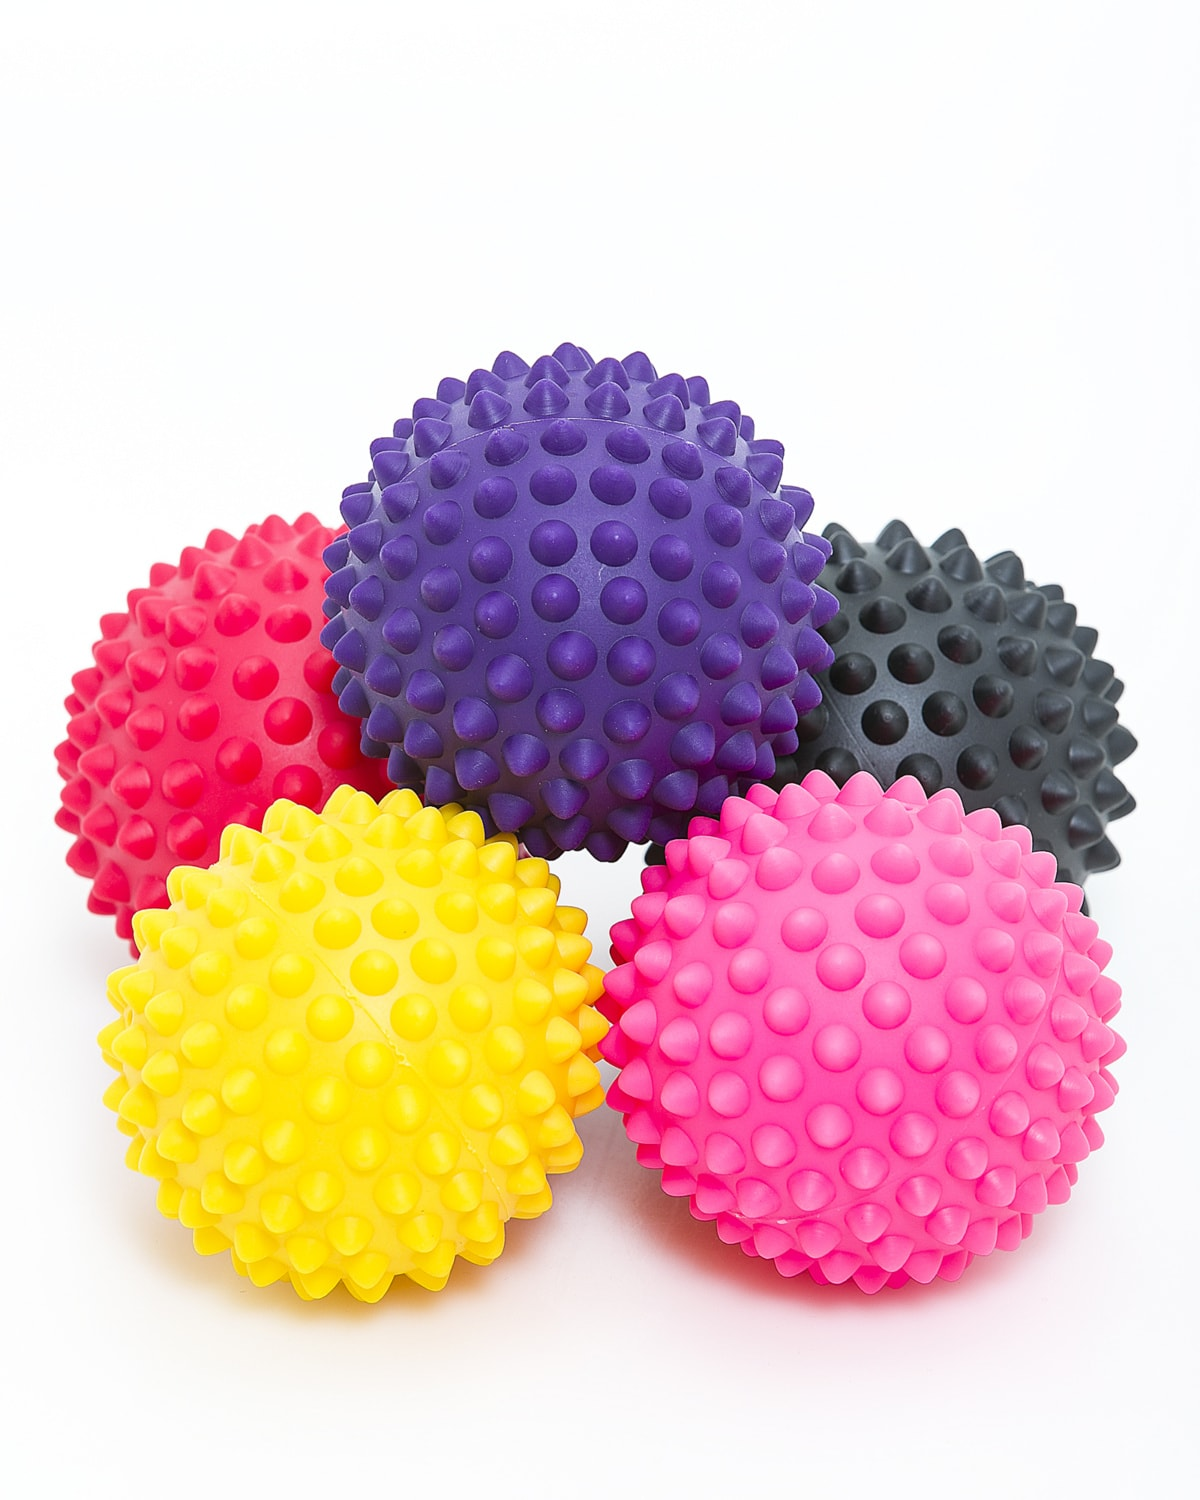 LEVITY Premium Fitness Spiky Trigger Ball b